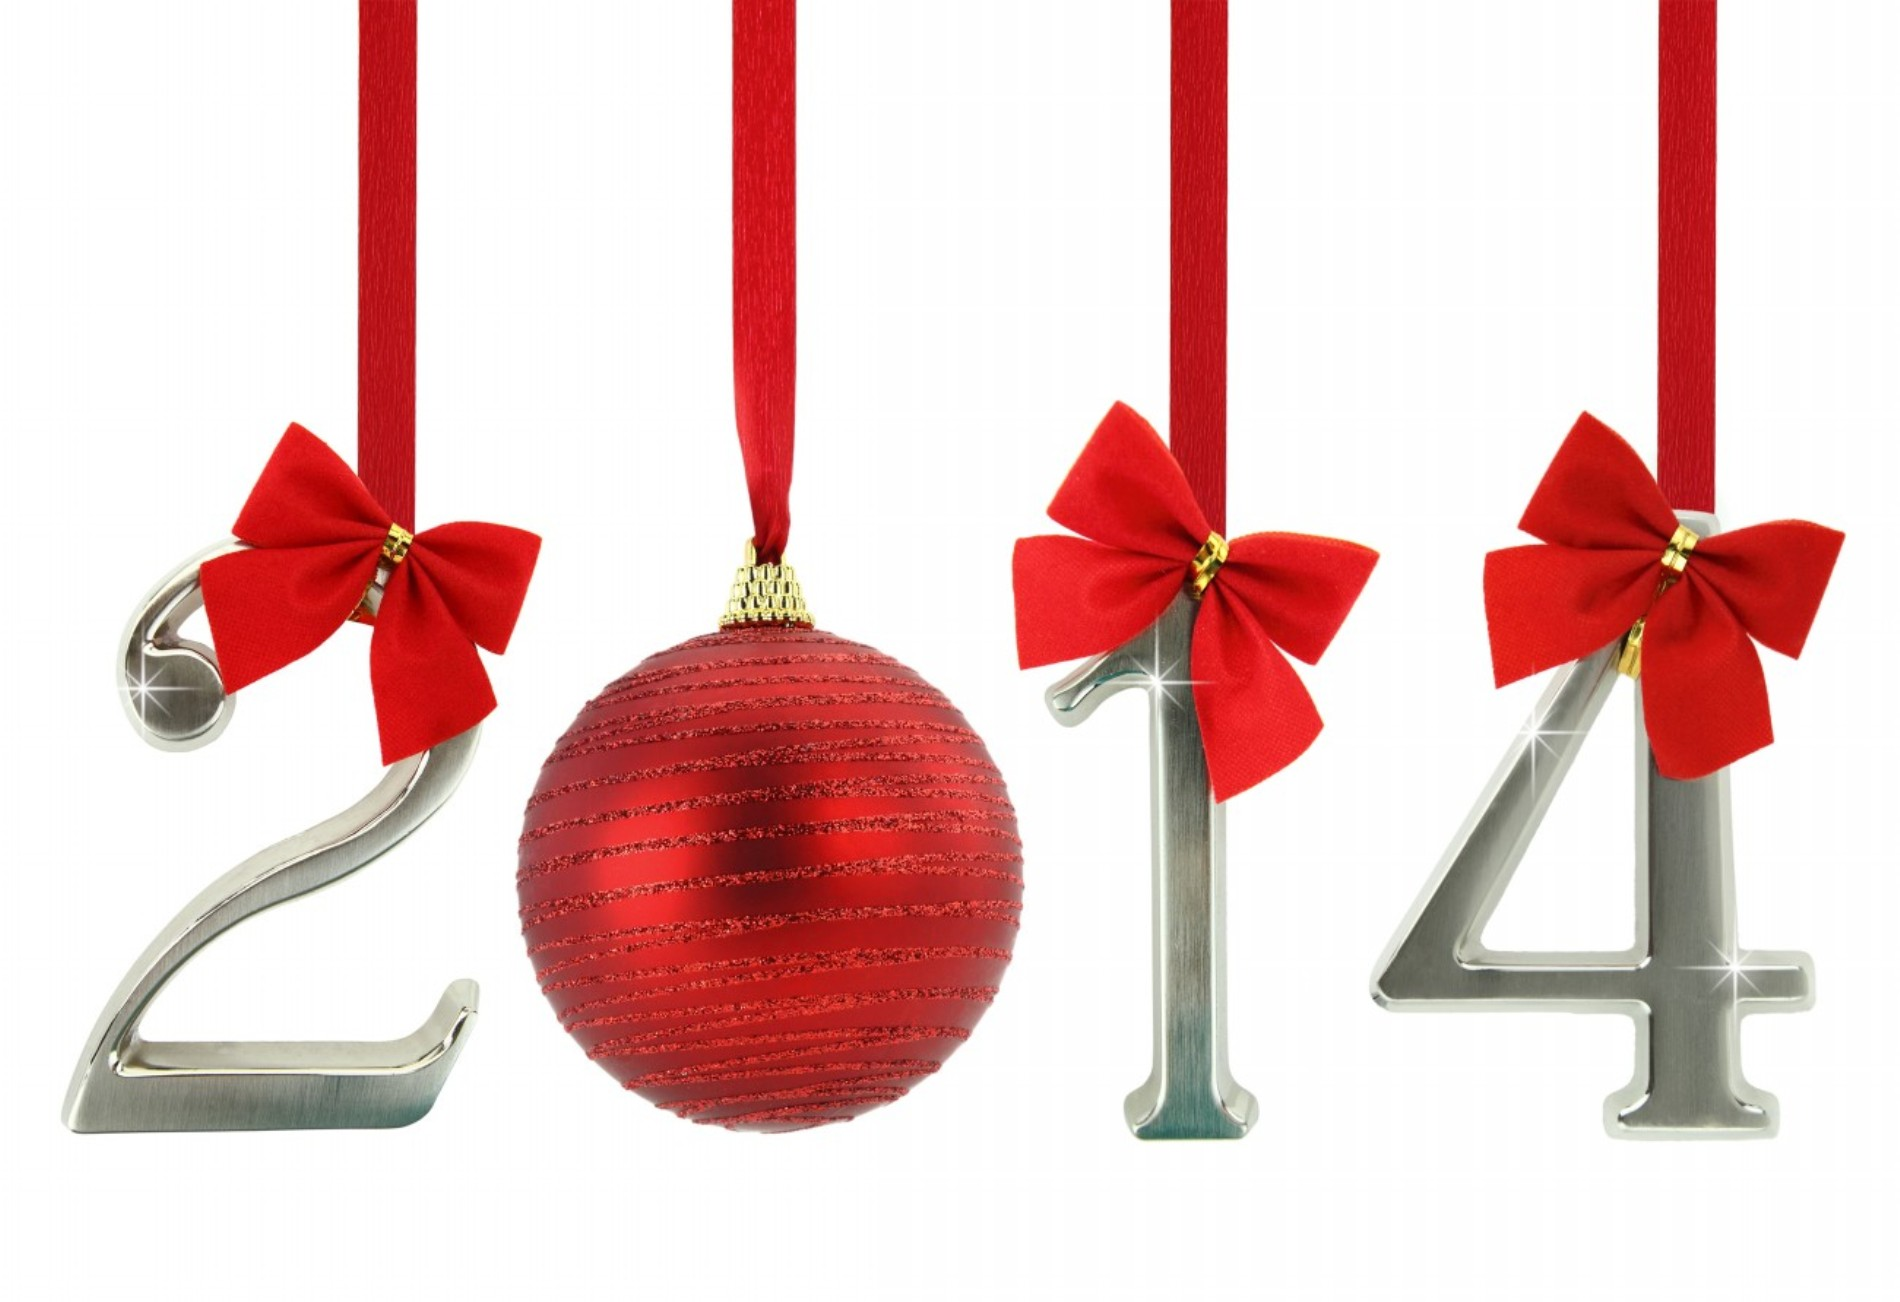 2014 >> Welcome 2014 Help Change The World The Future Of The County Is Now